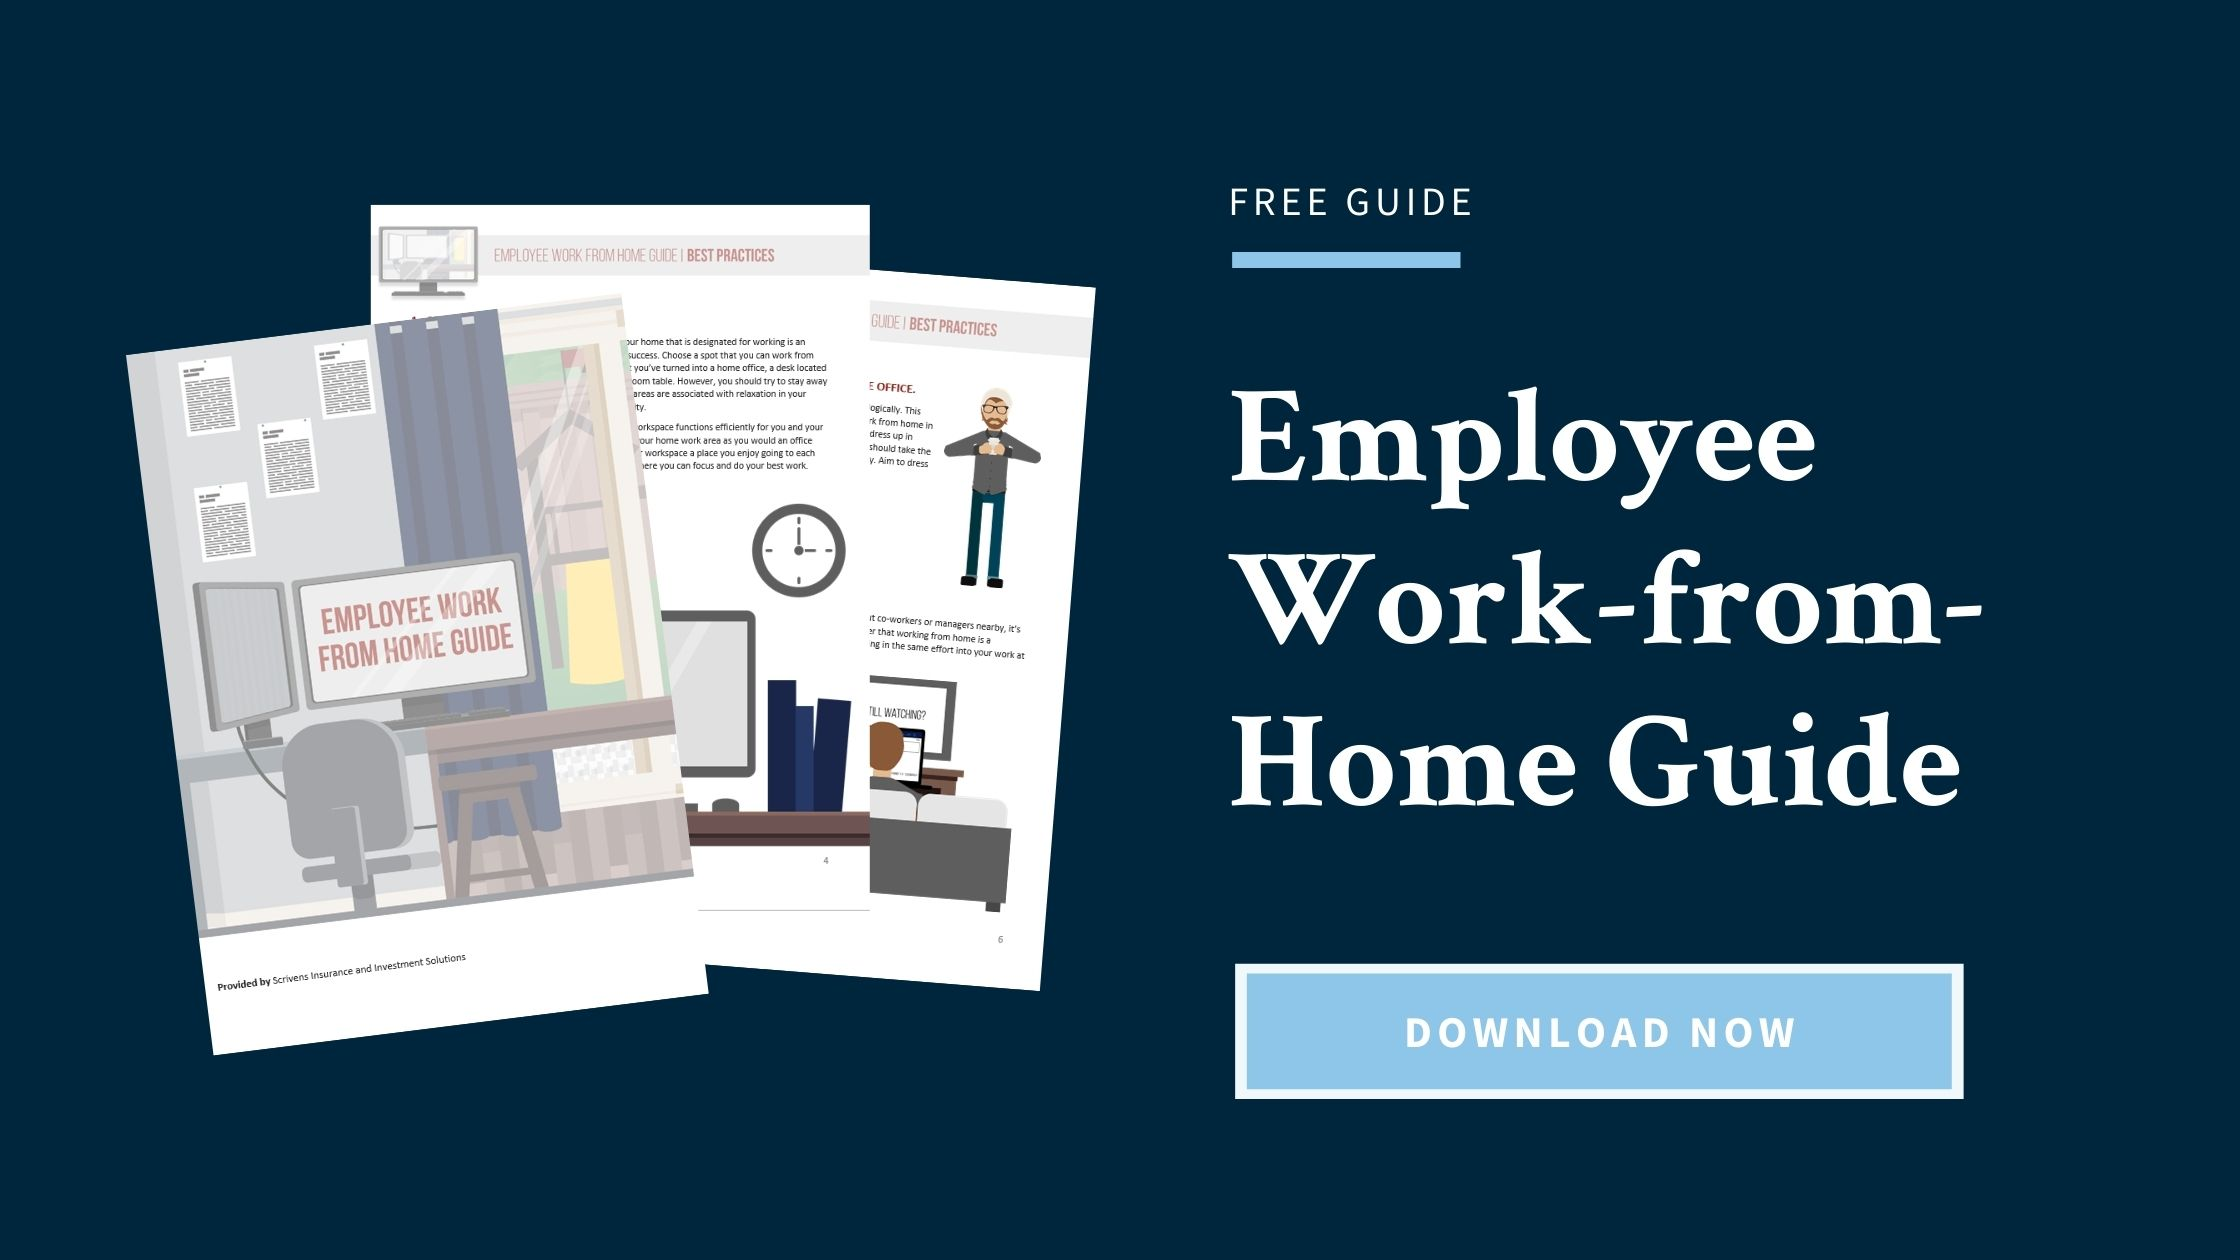 Free Download: Employee Work-from-Home Guide